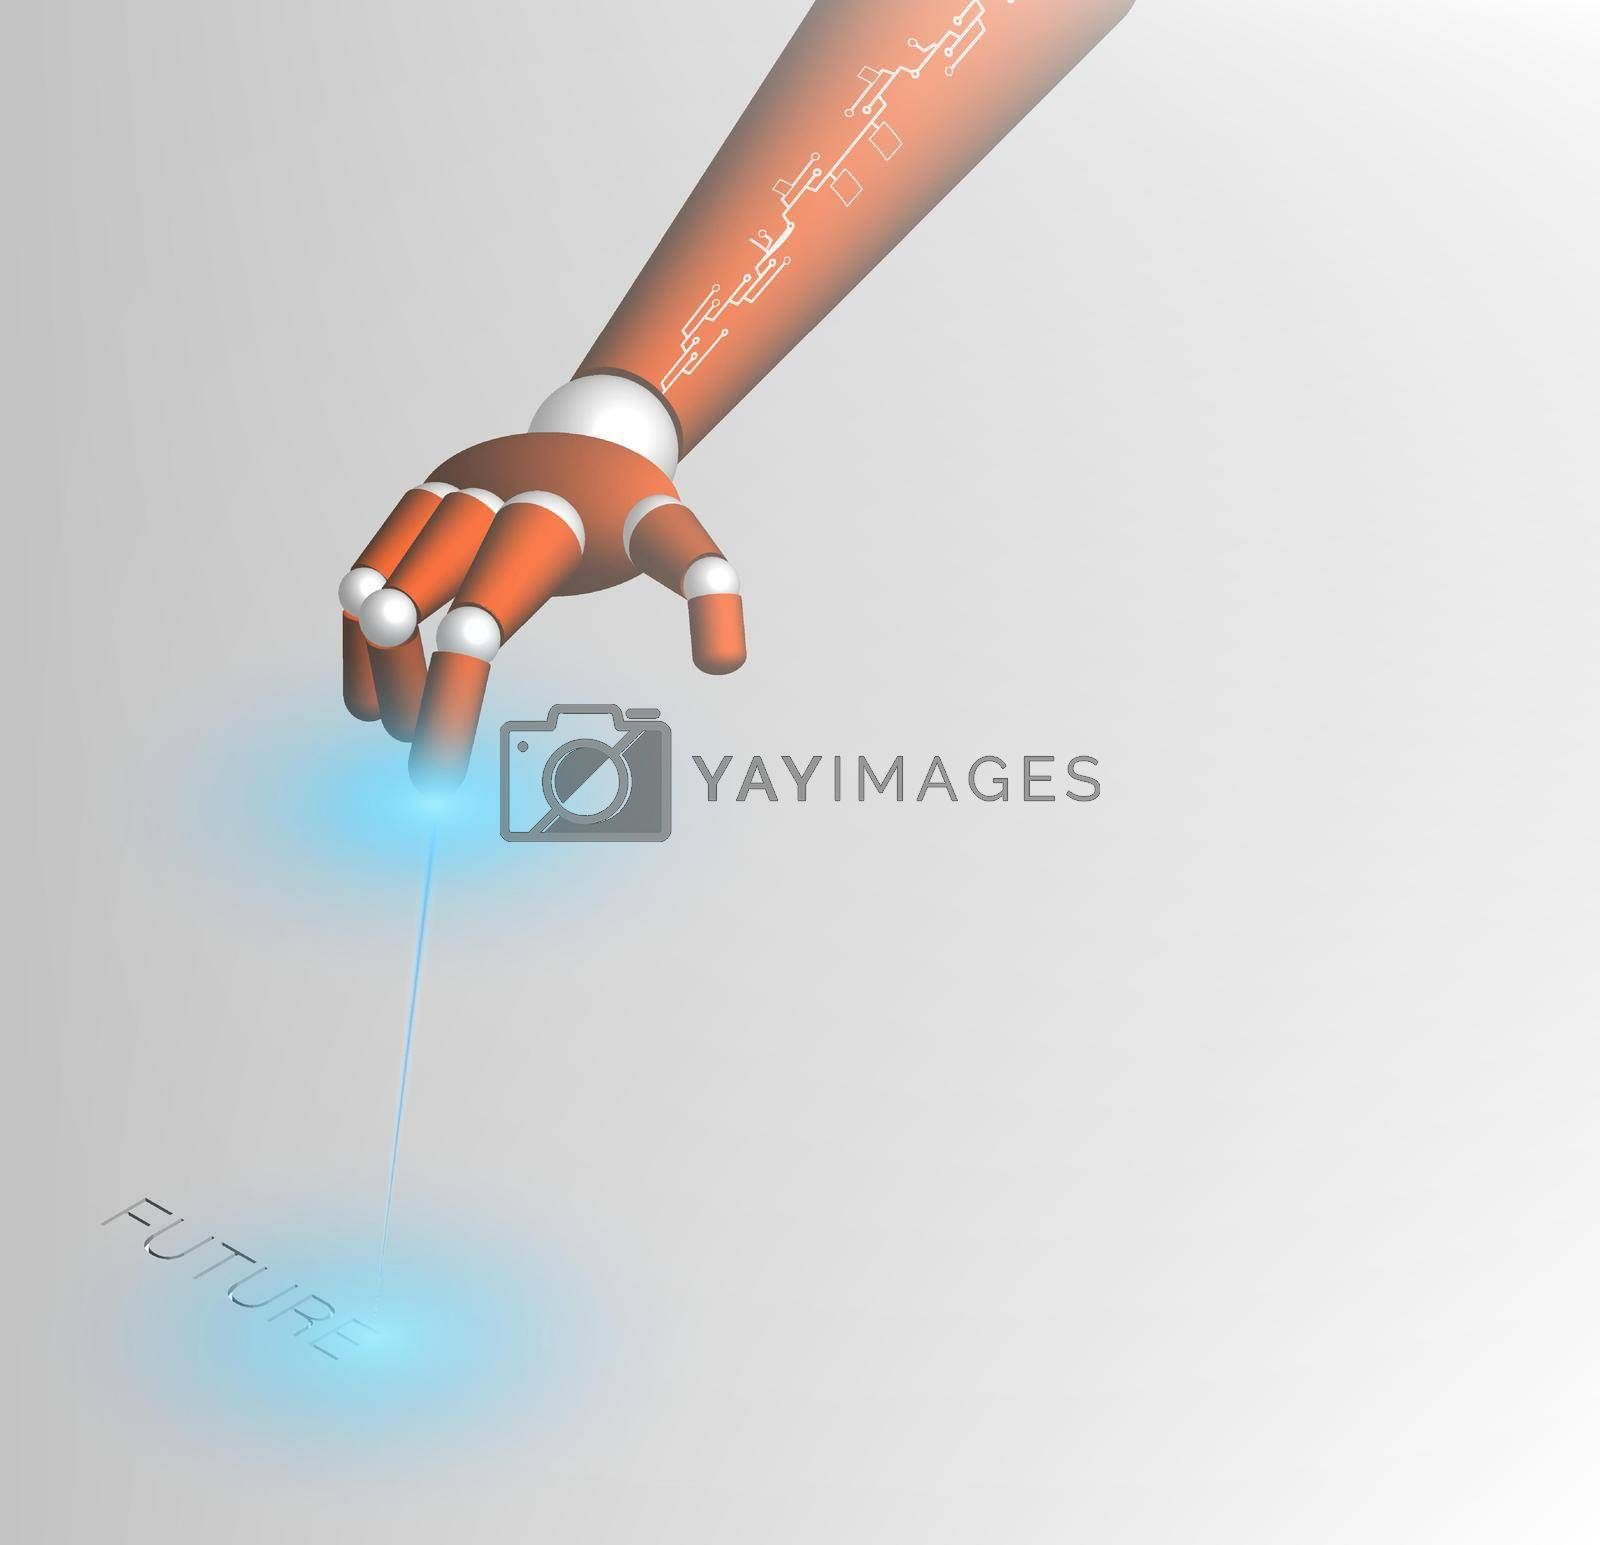 robot arm burns out the word FUTURE with a laser. Template, layout on the topic of new technologies. Vector